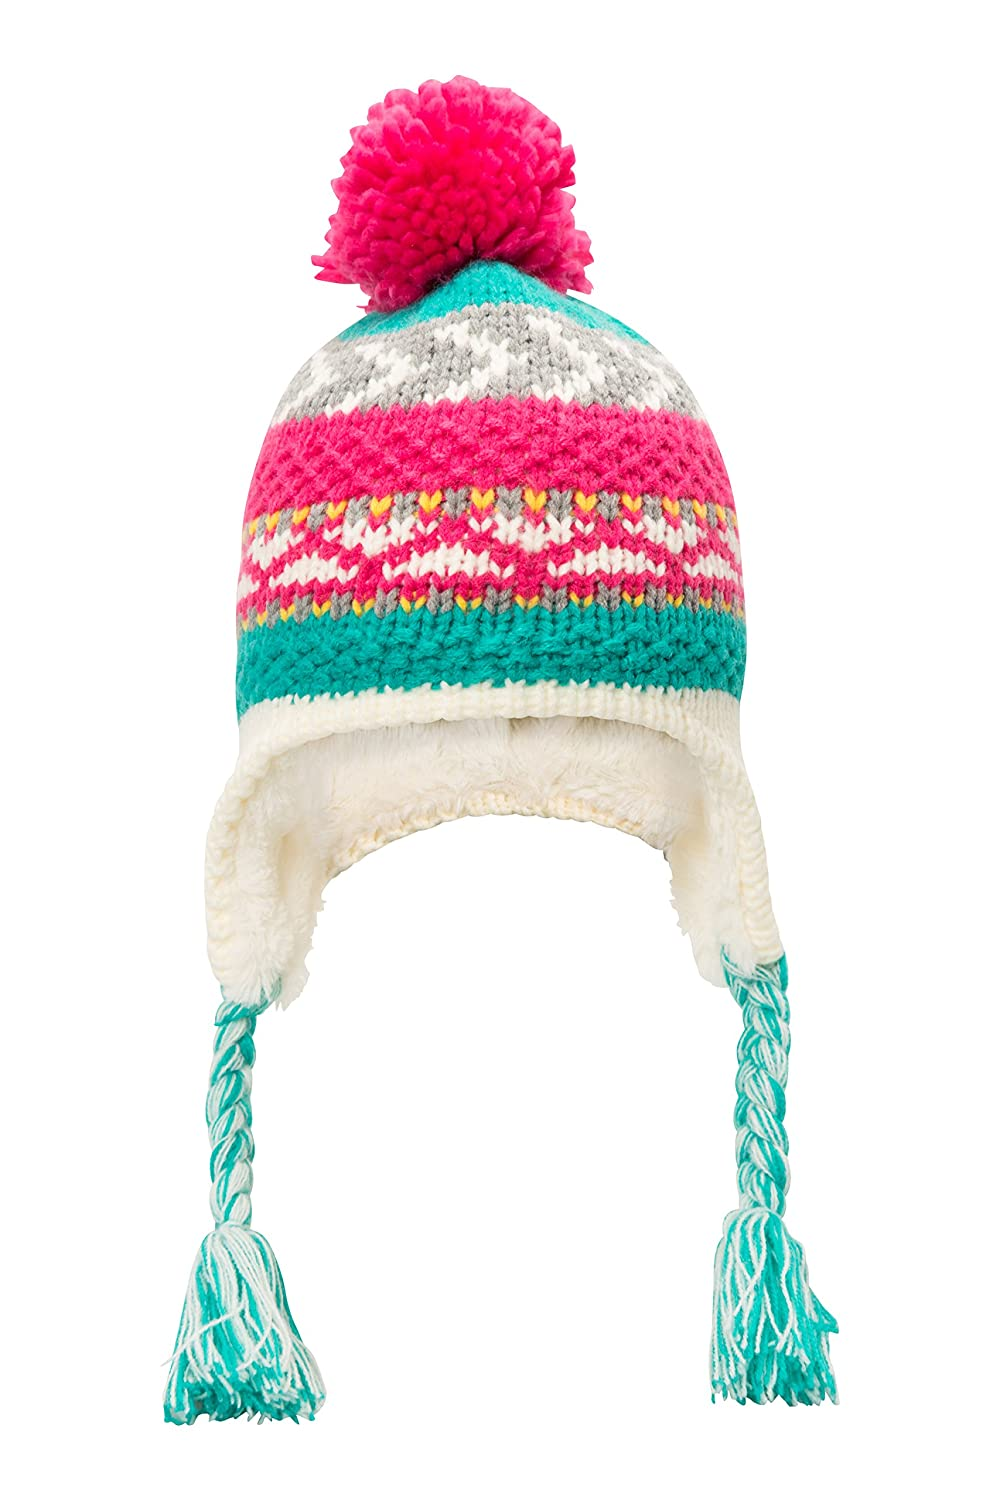 Mountain Warehouse Patterned Stripe Knit Kids Hat - Lightweight, Warm, Knitted & Stretchy Fabric with Double Layer - Great Choice for The Slopes or Everyday Wear Pink 023240040001